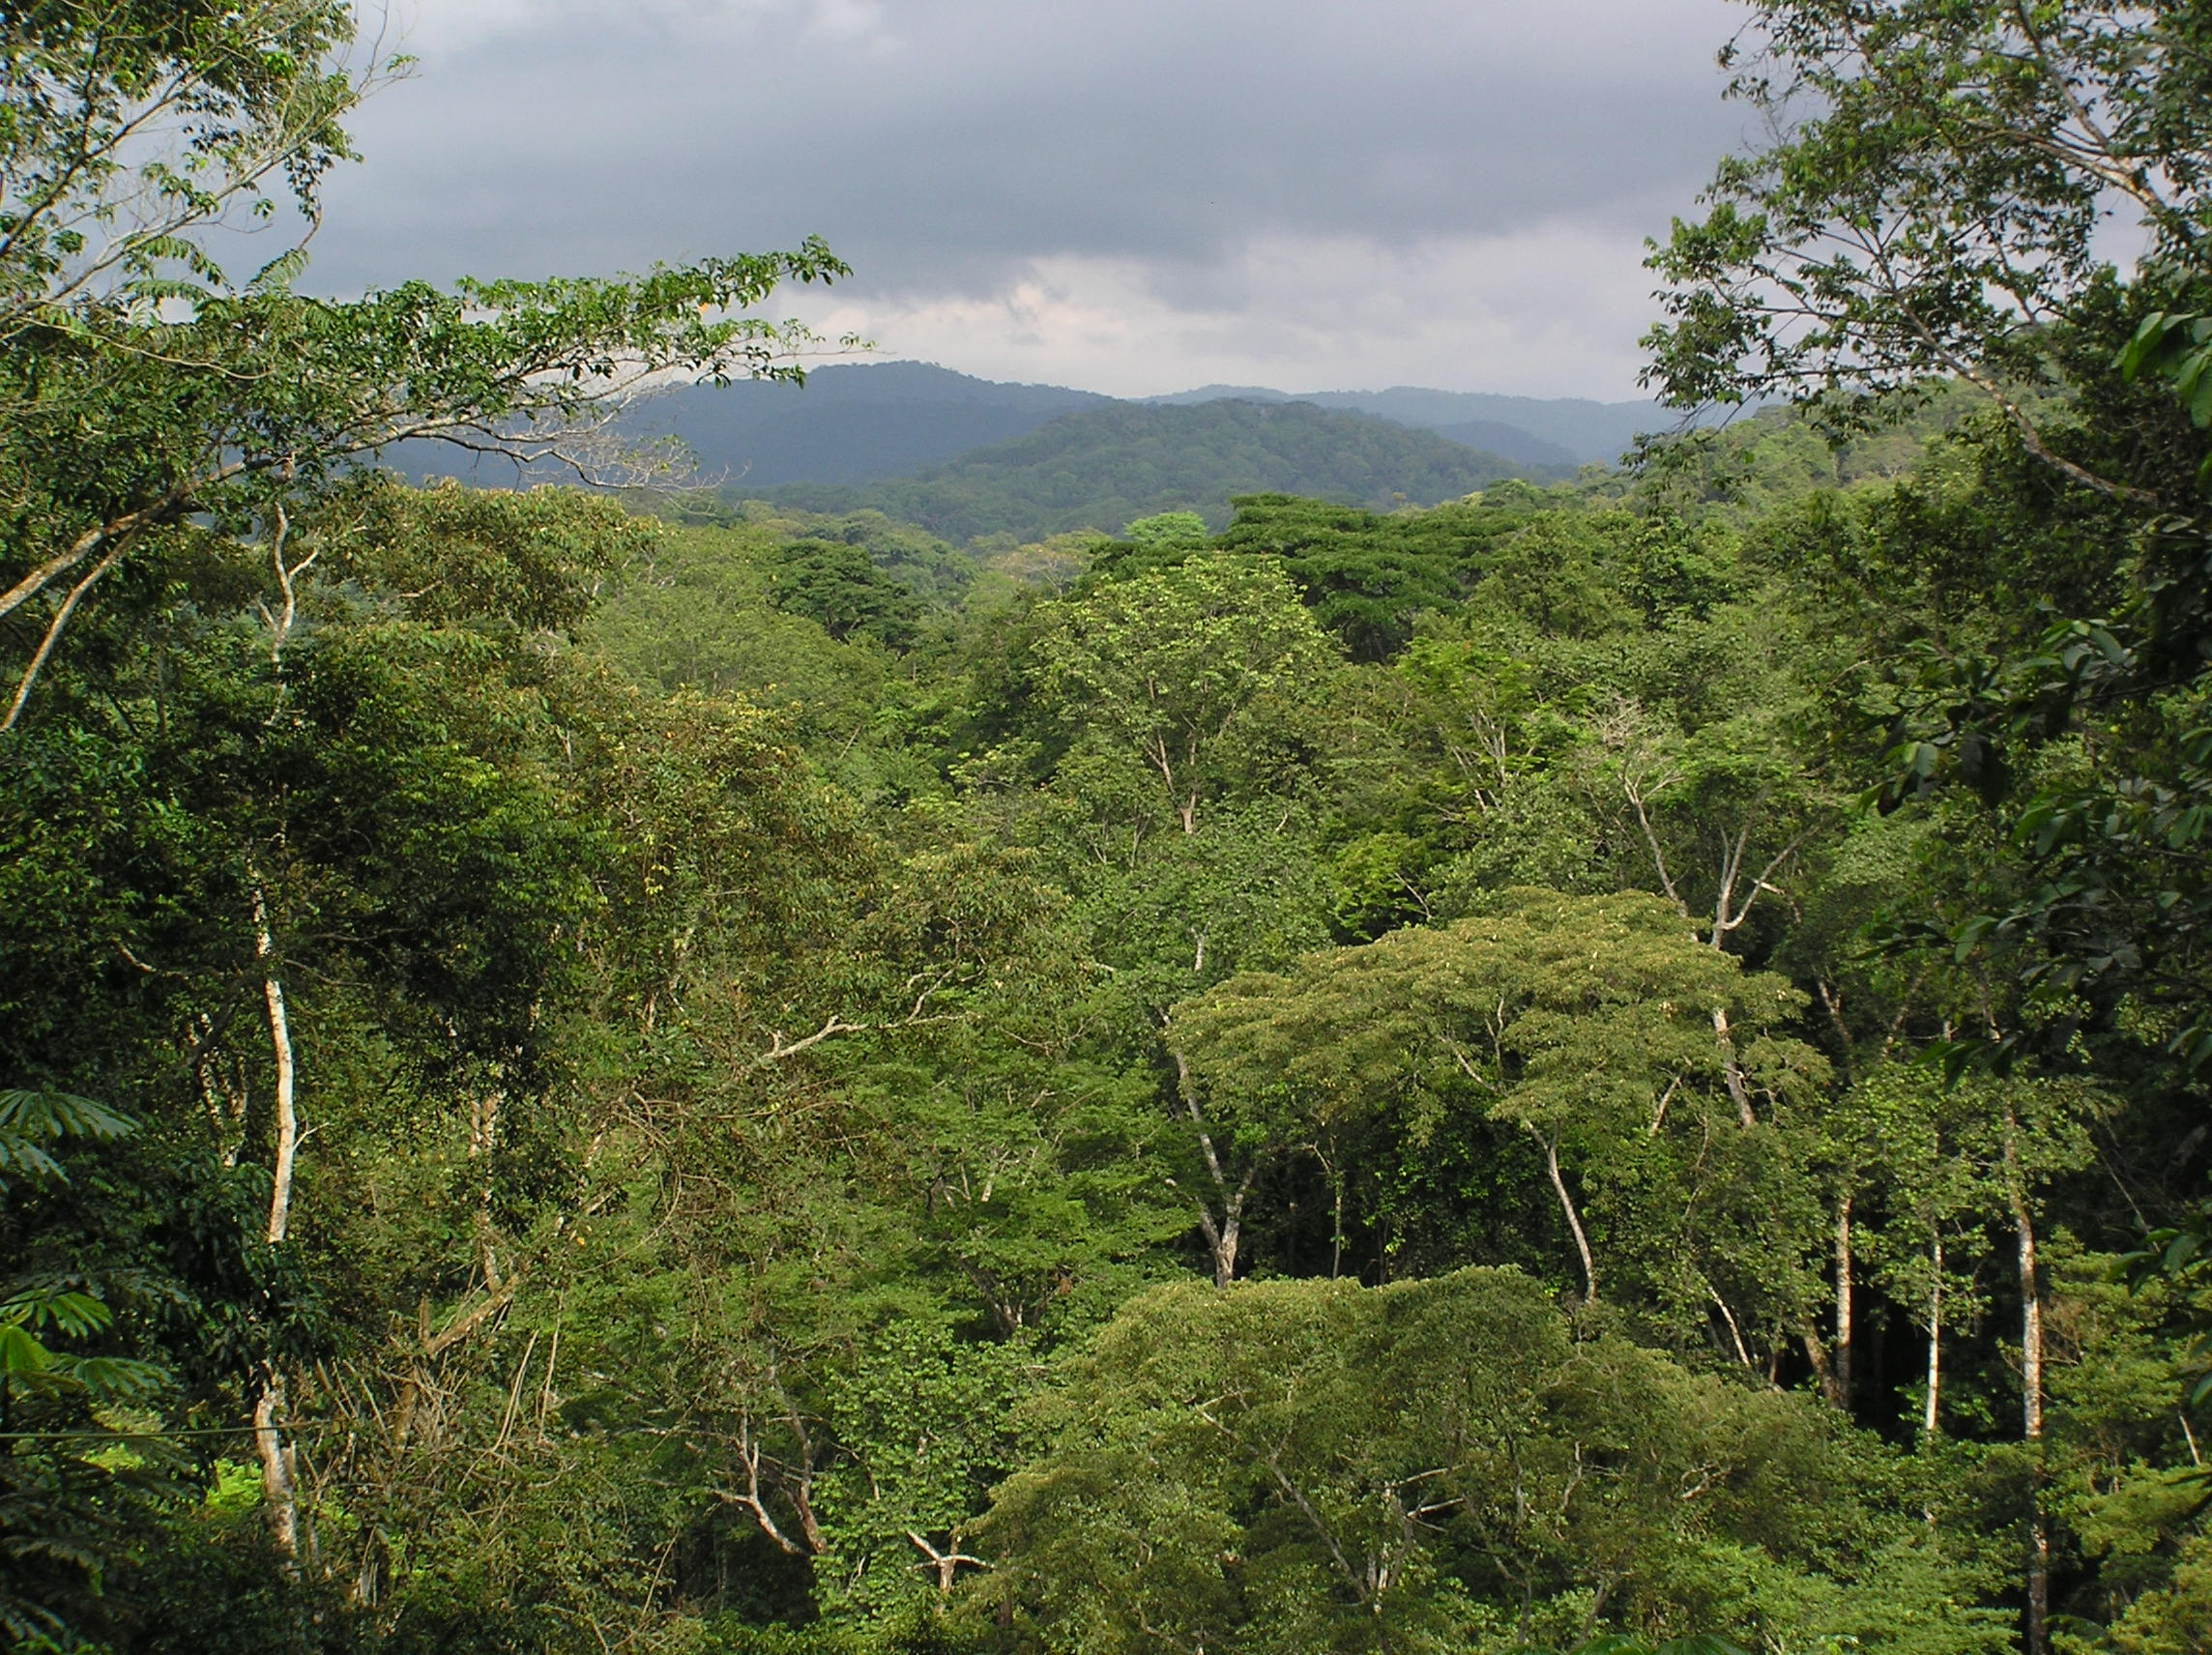 Current vulnerability in the Monte Alén–Monts de Cristal landscape, Equatorial Guinea